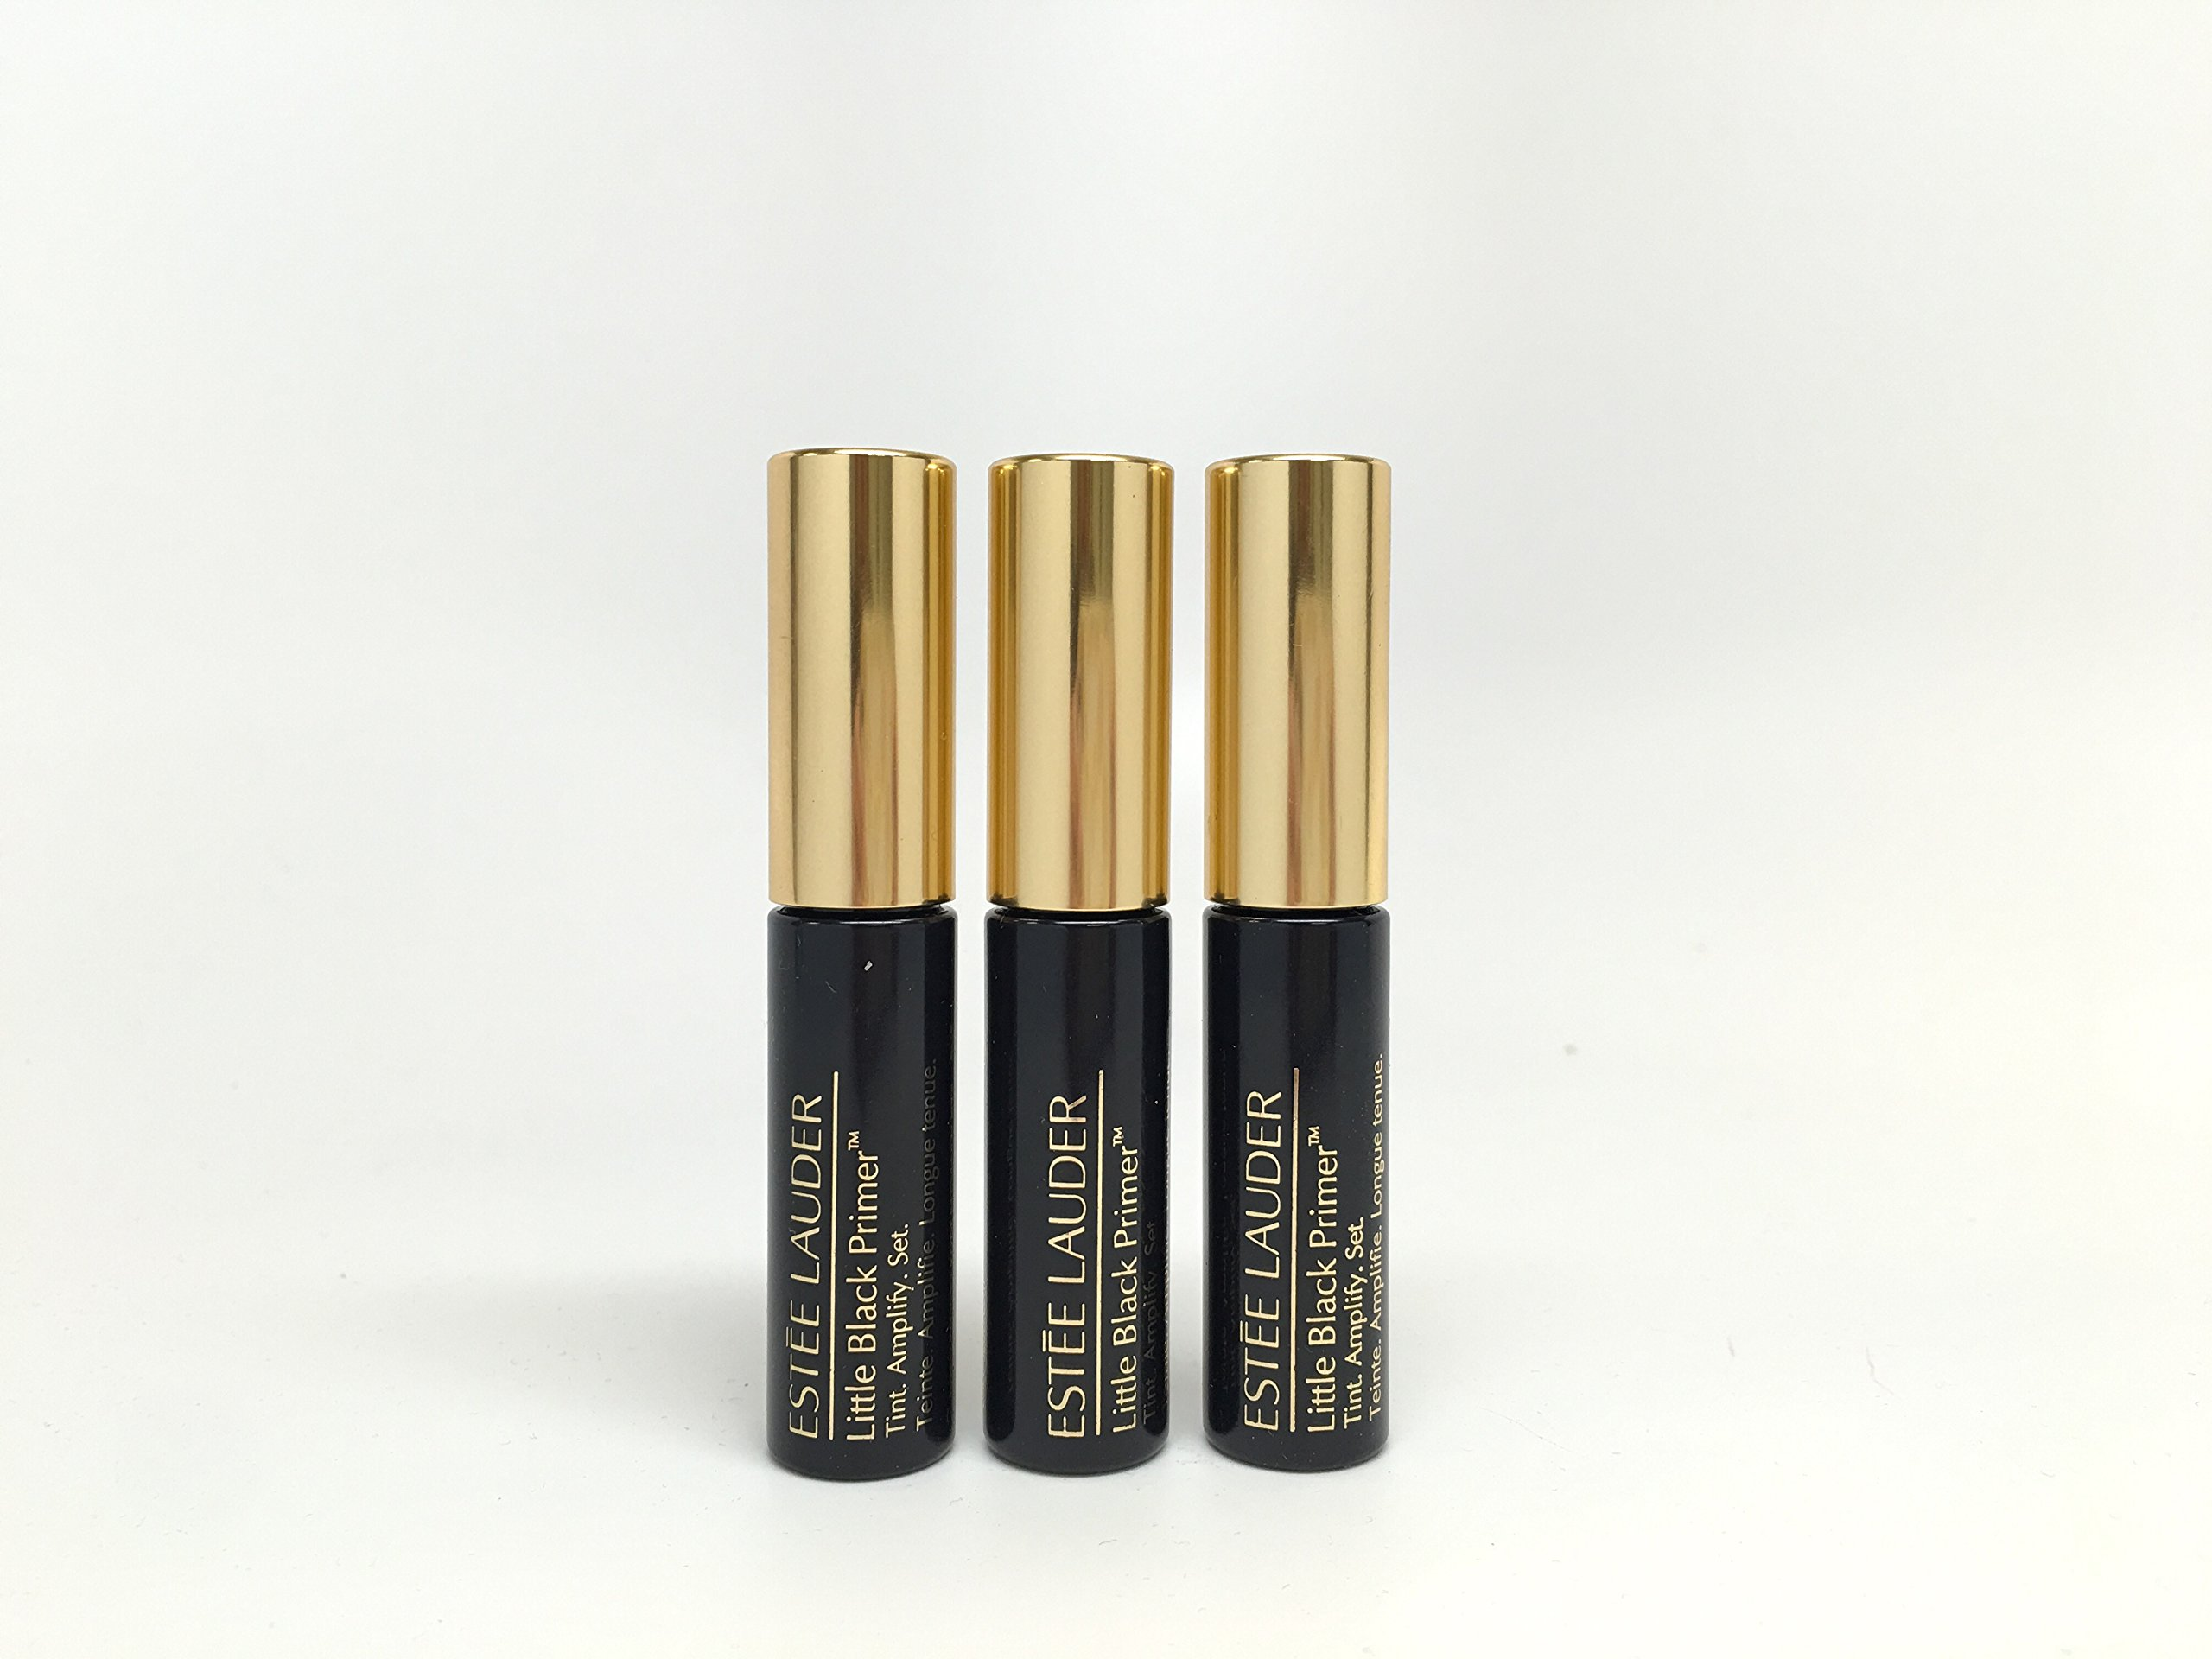 Estee Lauder Little Black Primer, 3 pack (2.8 ml each)